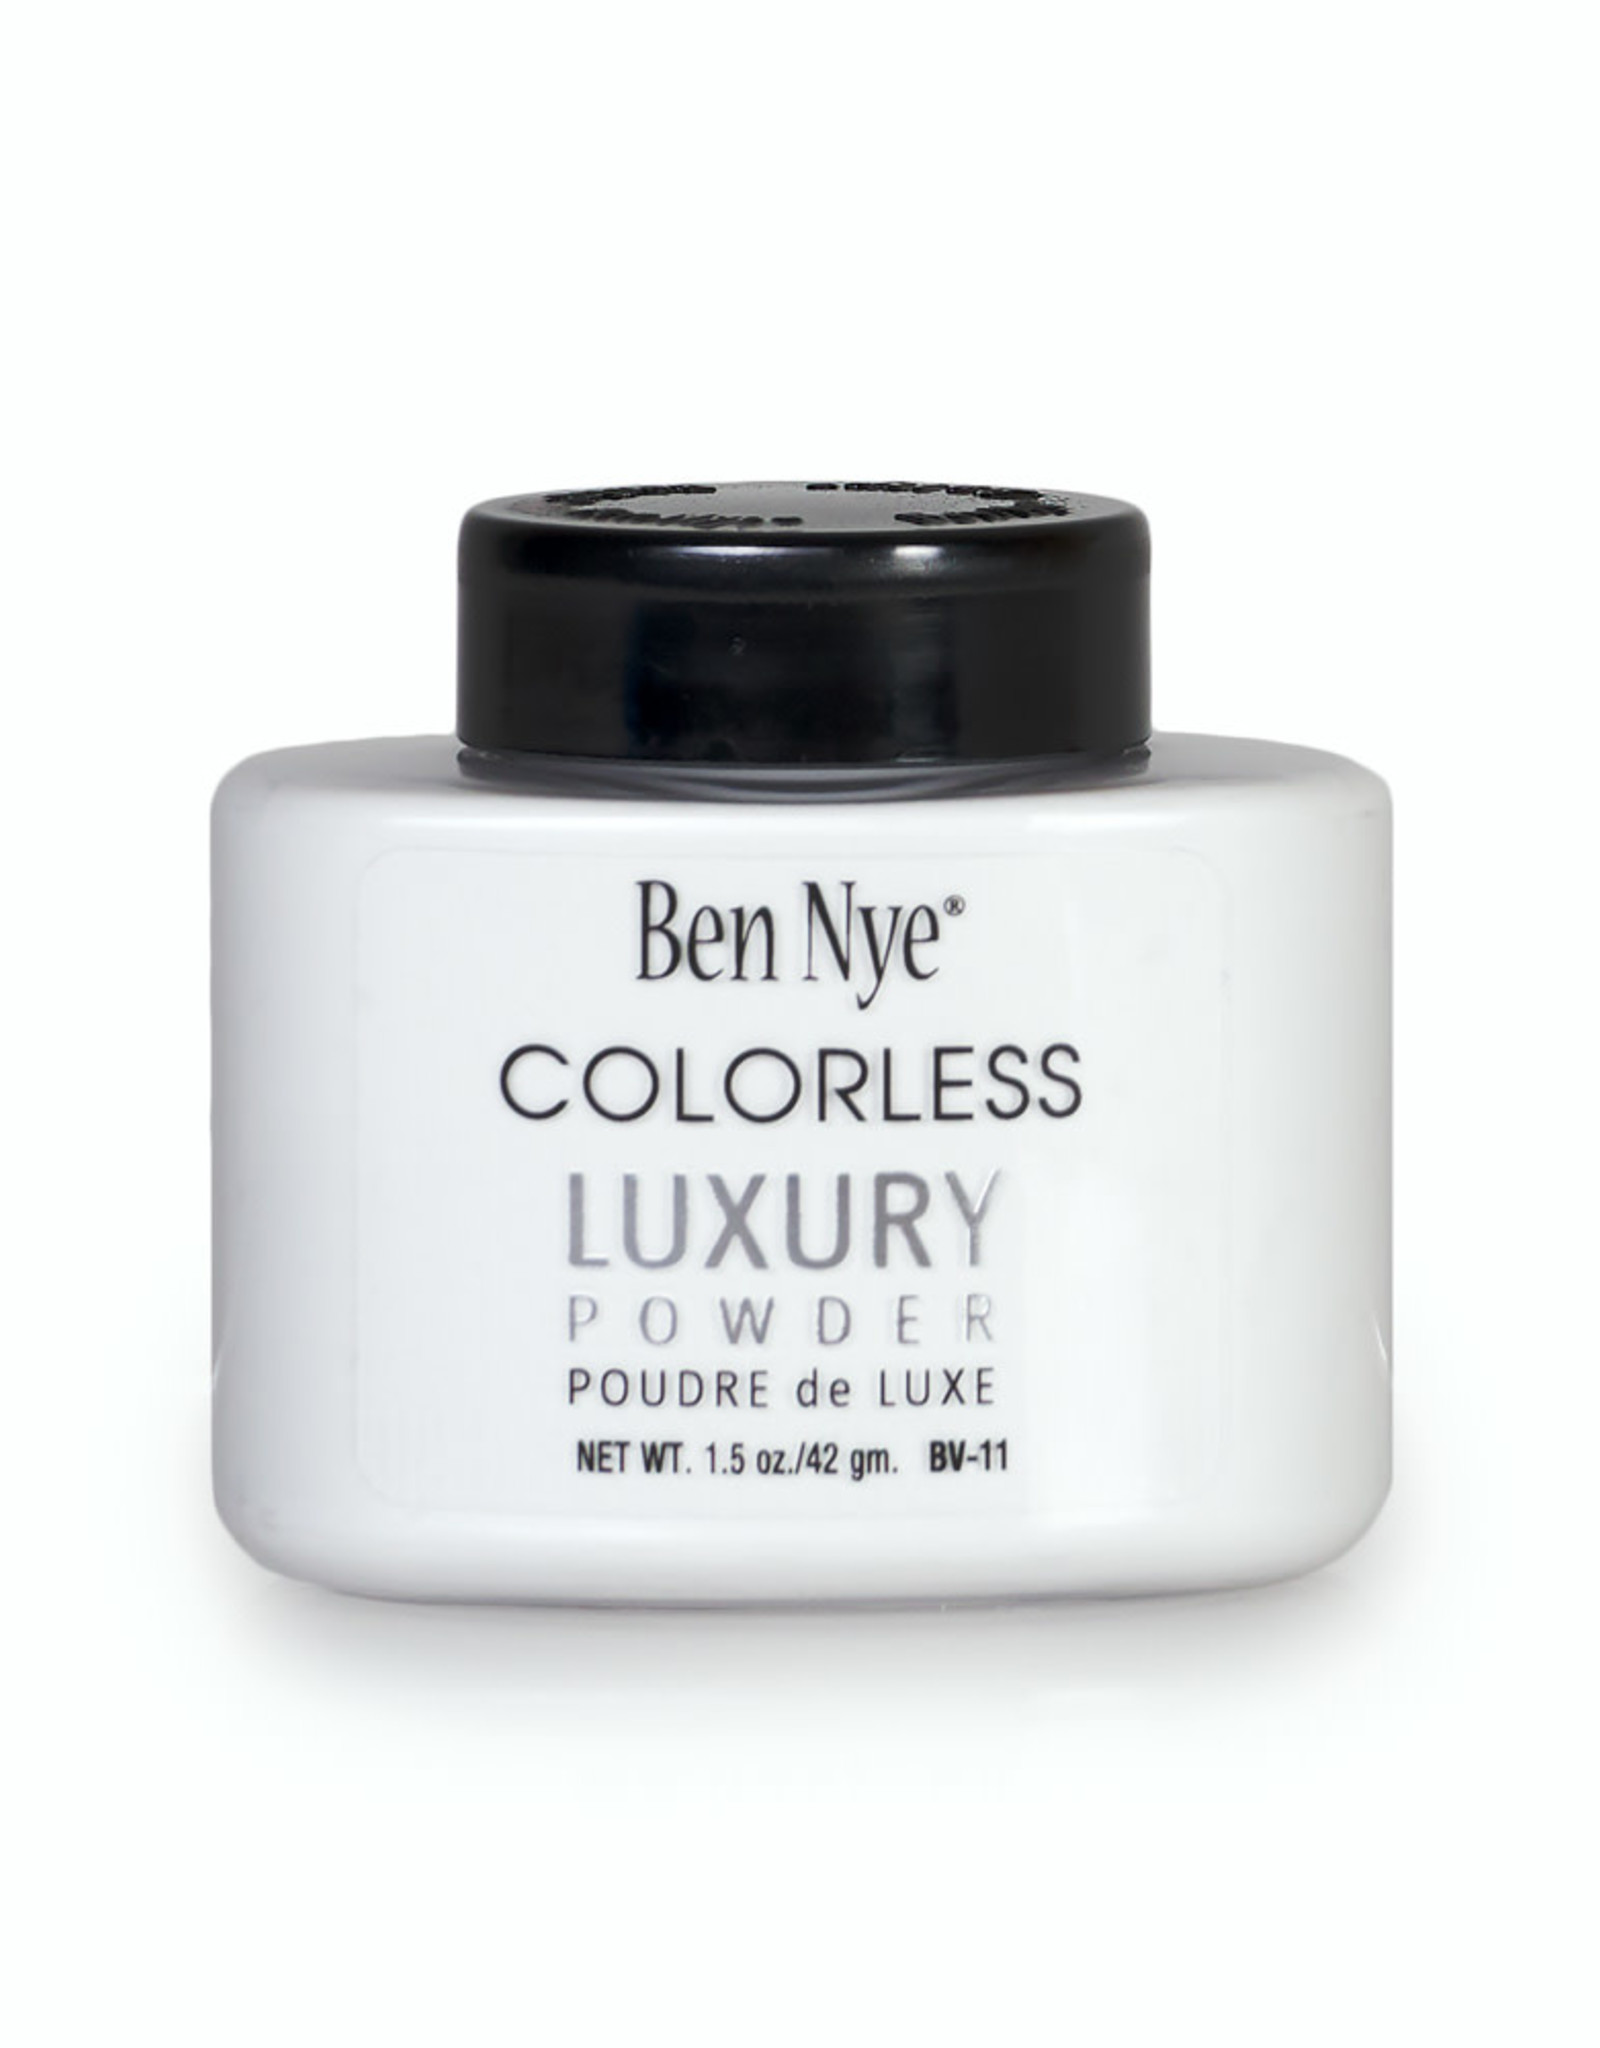 Ben Nye LUXURY POWDER, COLORLESS, SHAKER 1.5 OZ